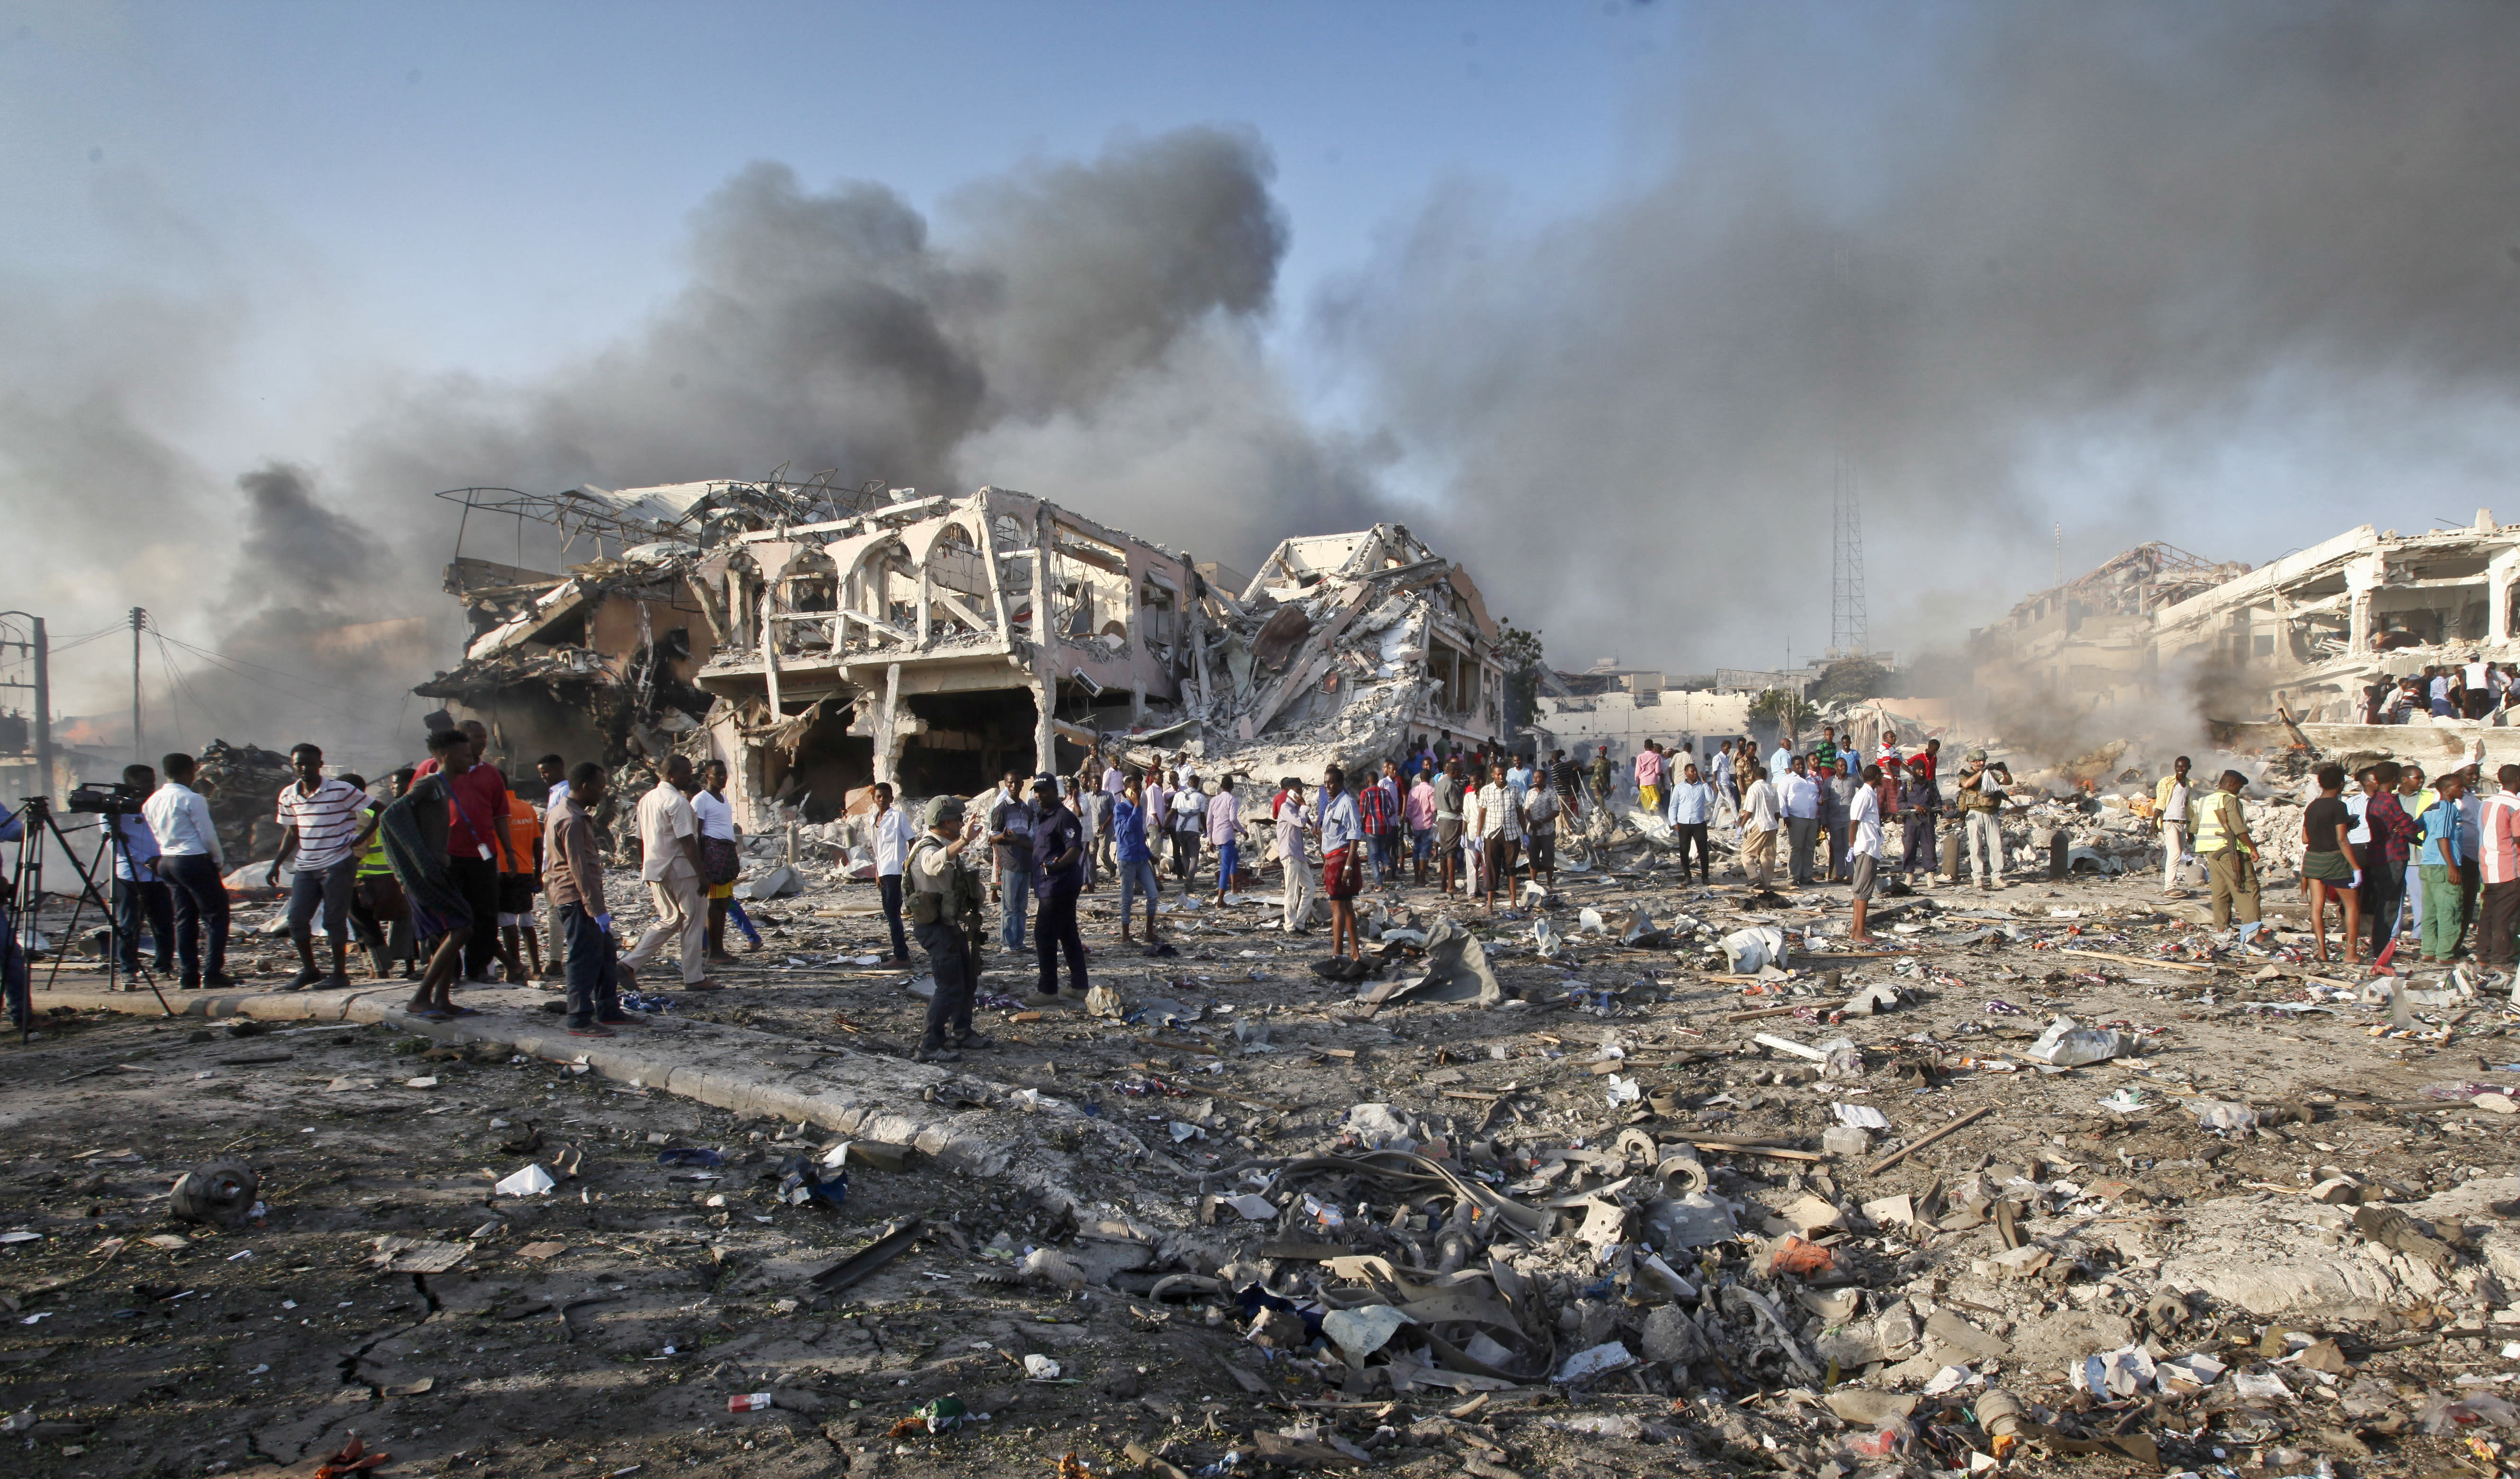 FILE - In this Saturday, Oct. 14, 2017 file photo, Somalis gather and search for survivors by destroyed buildings at the scene of a blast in the capital Mogadishu, Somalia. The U.S. Africa Command, signaling concern over the Pentagon's potential cuts in a briefing, has emphasized the Somalia-based al-Shabab as a threat to the U.S. homeland, in intent if not yet in capability _ and warning that neither China nor Russia is doing much to counter Africa's extremist groups.(AP Photo/Farah Abdi Warsameh, File)